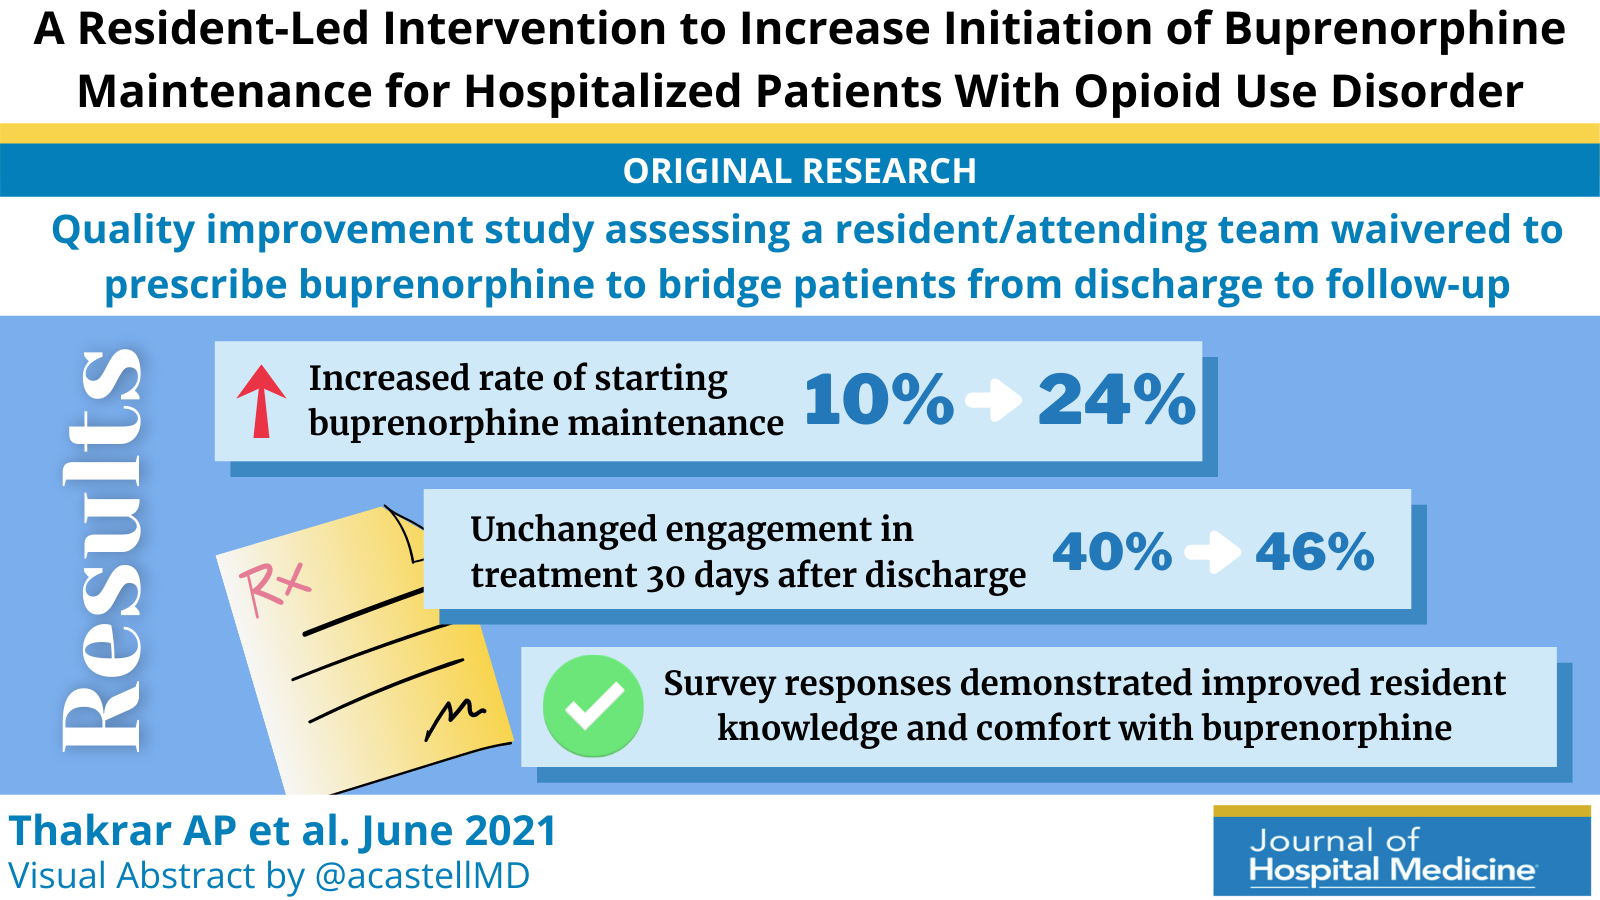 A Resident-Led Intervention to Increase Initiation of Buprenorphine Maintenance for Hospitalized Patients With Opioid Use Disorder